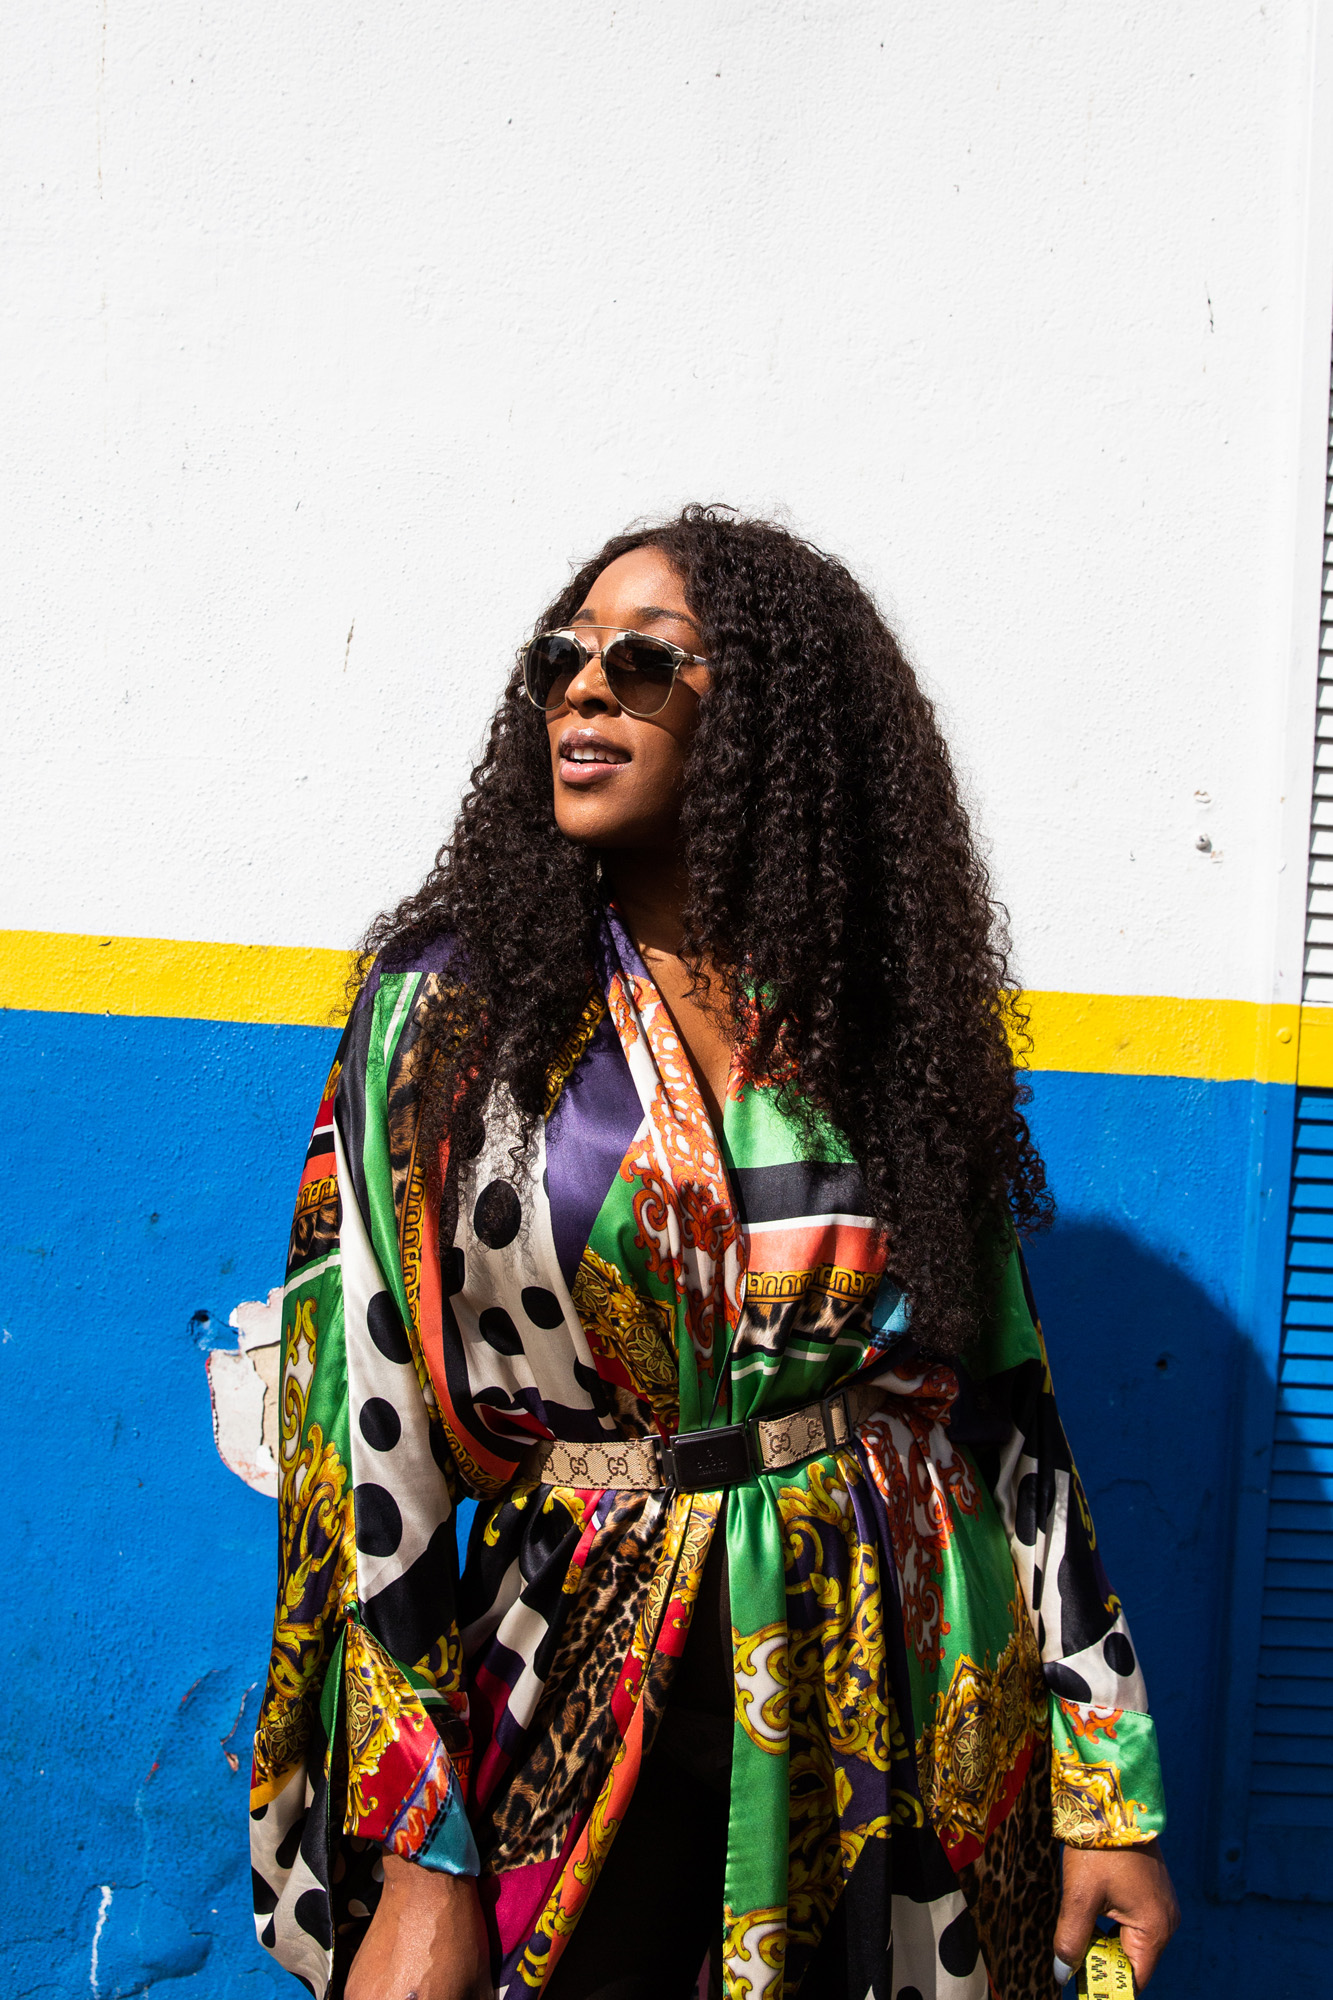 Kesha McLeod's Closet Is a Love Letter to Dior